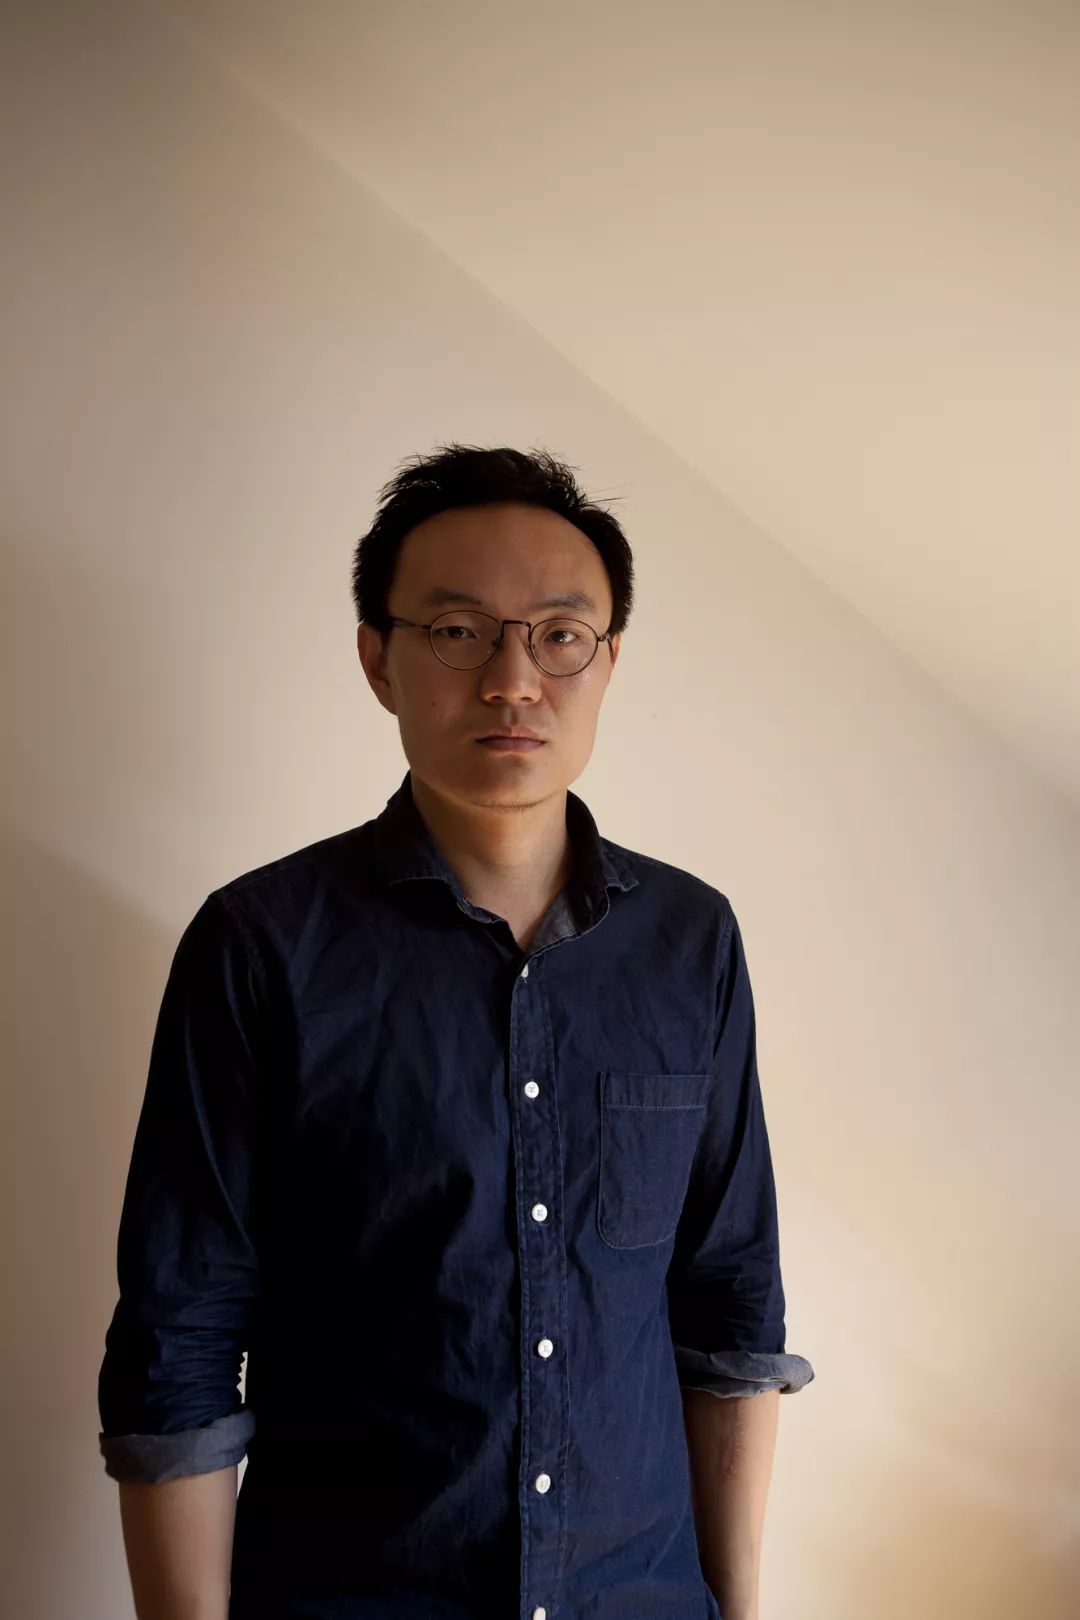 Zhang Zhizhou (b.1985, Beijing, China) was graduated from Beijing International Studies University(BA in Law) and University for the Creative Arts in Rochester UK (MA in Photography). He currently works as freelance photographer, artist and writer. His recent work focuses on the complex relationship of the languages of photography and the experiences of seeing.